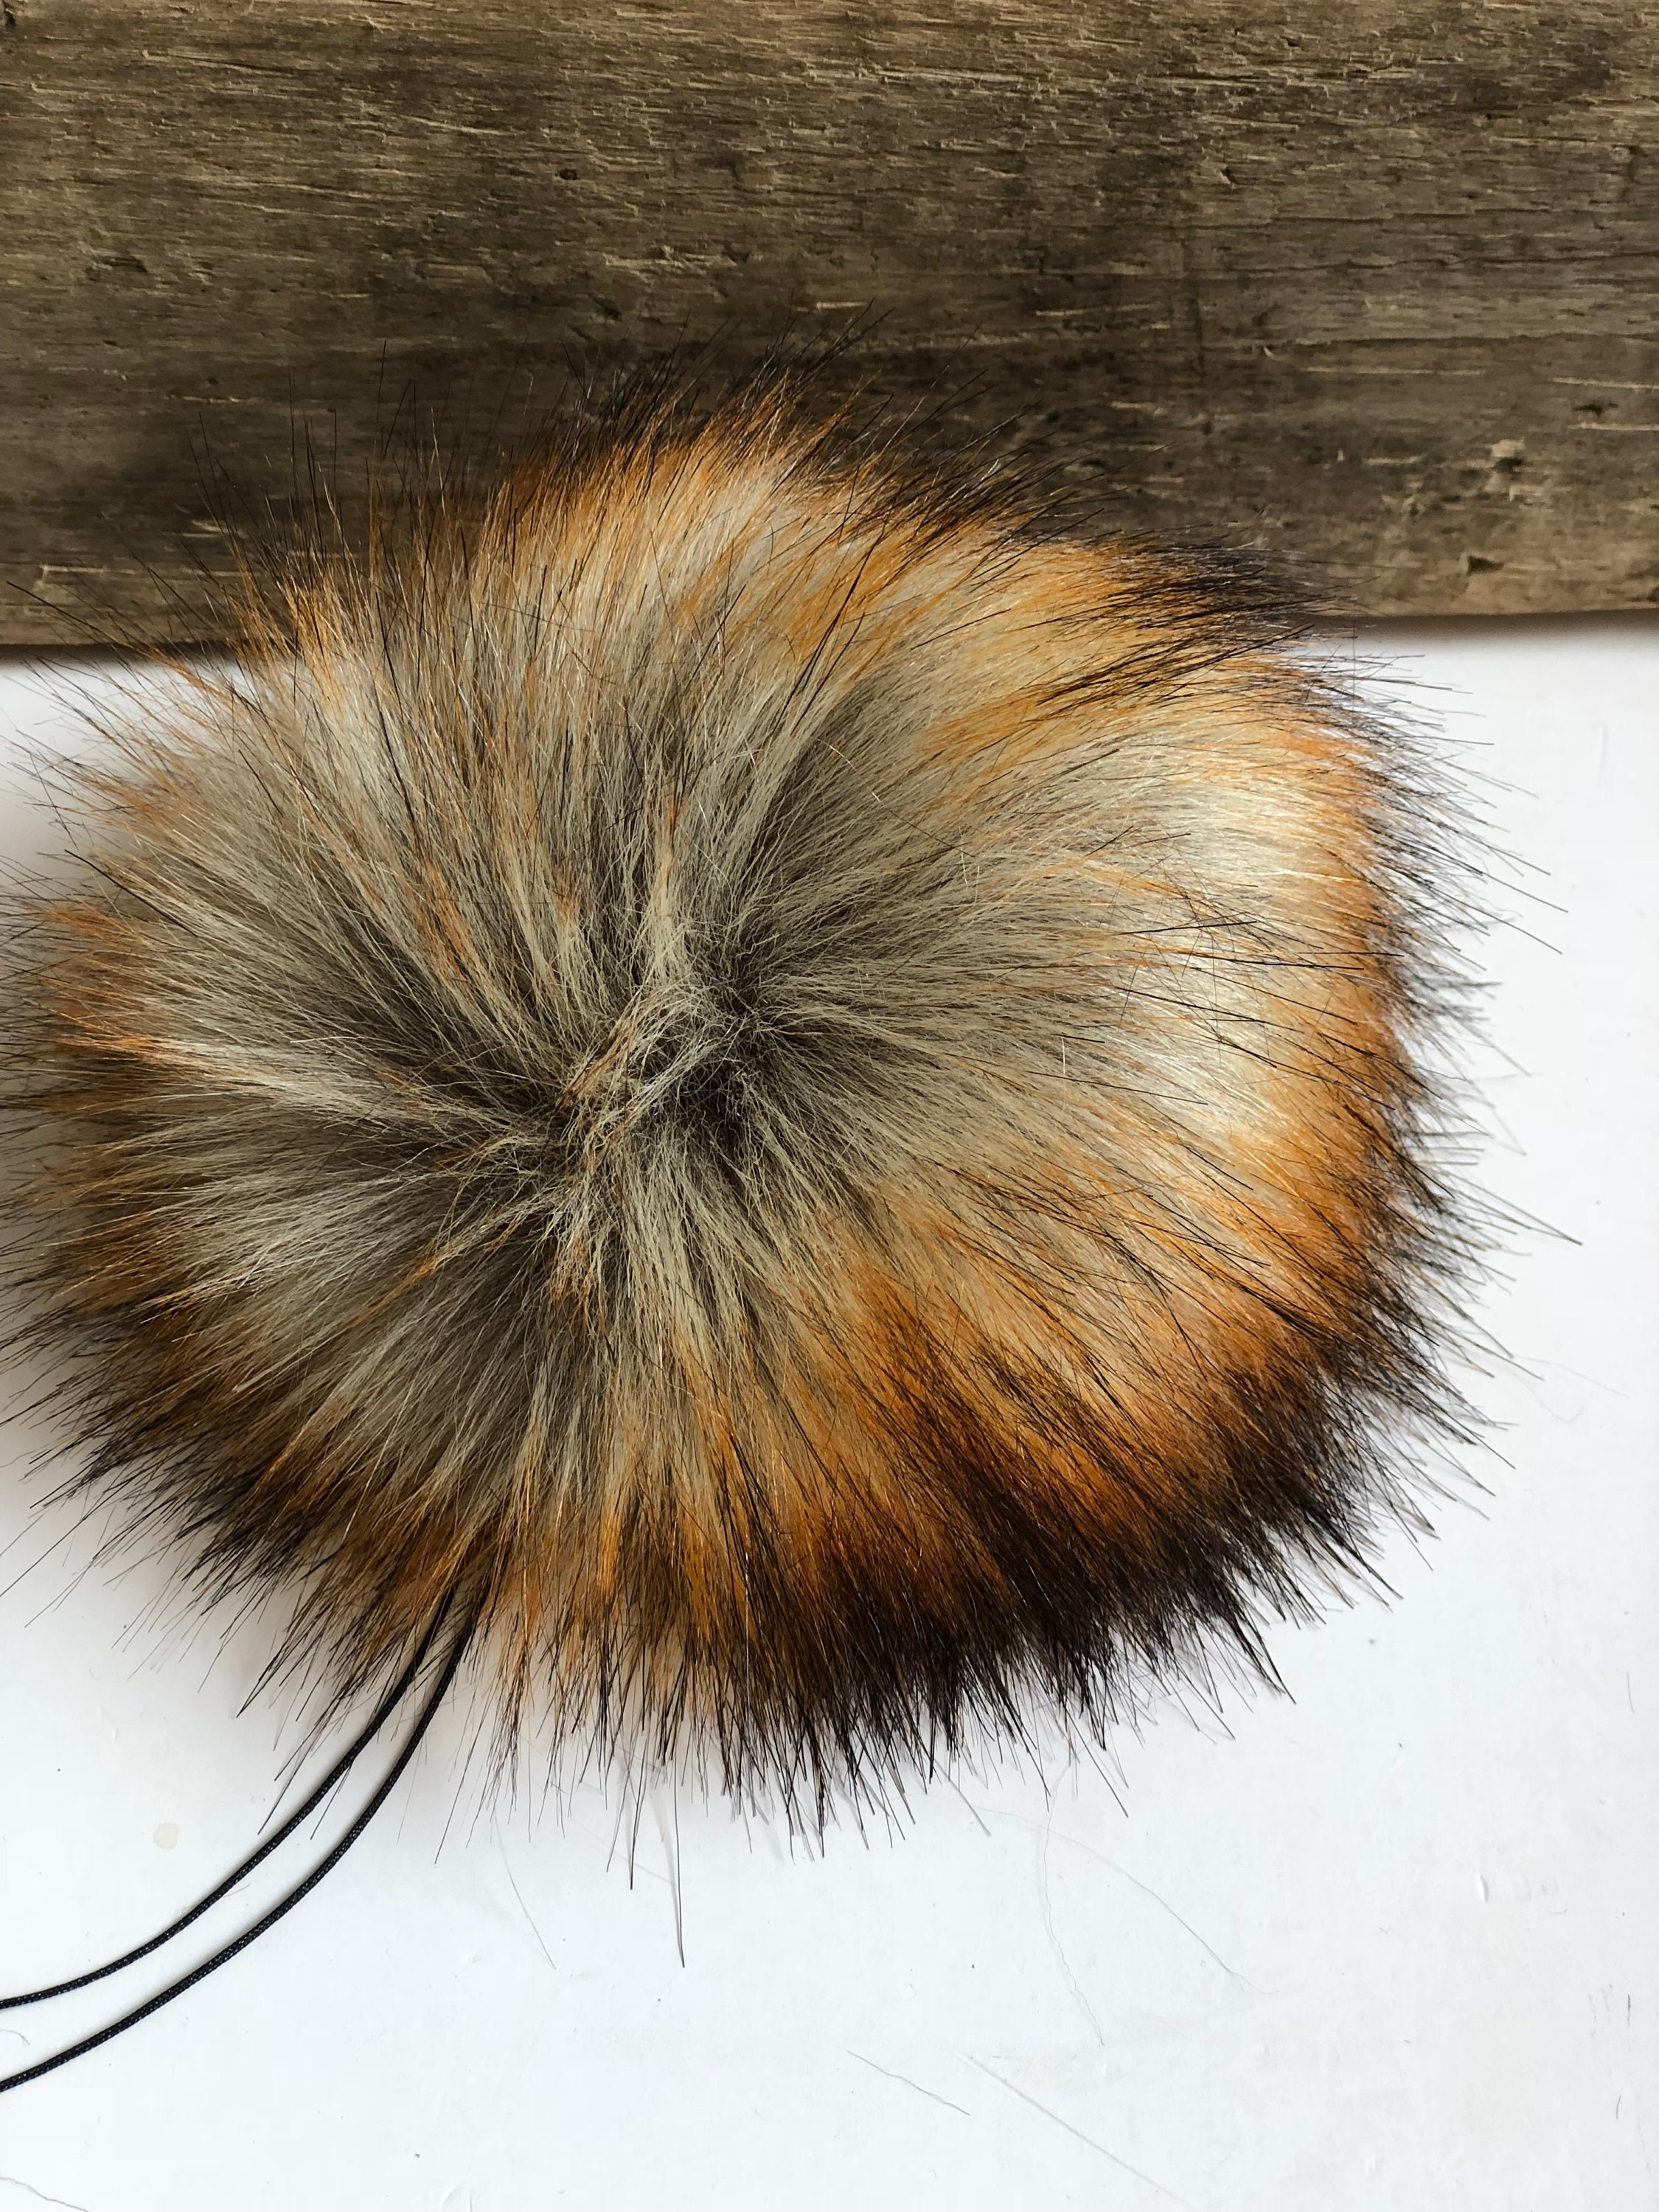 8d06a41a0aa Reynard Faux Fur Plush Large Black Pom Pom Handmade Fake Vegan for Toques  Beanies Hats Keychains Purse Zipper Fob from KitchenKlutter on Etsy Studio